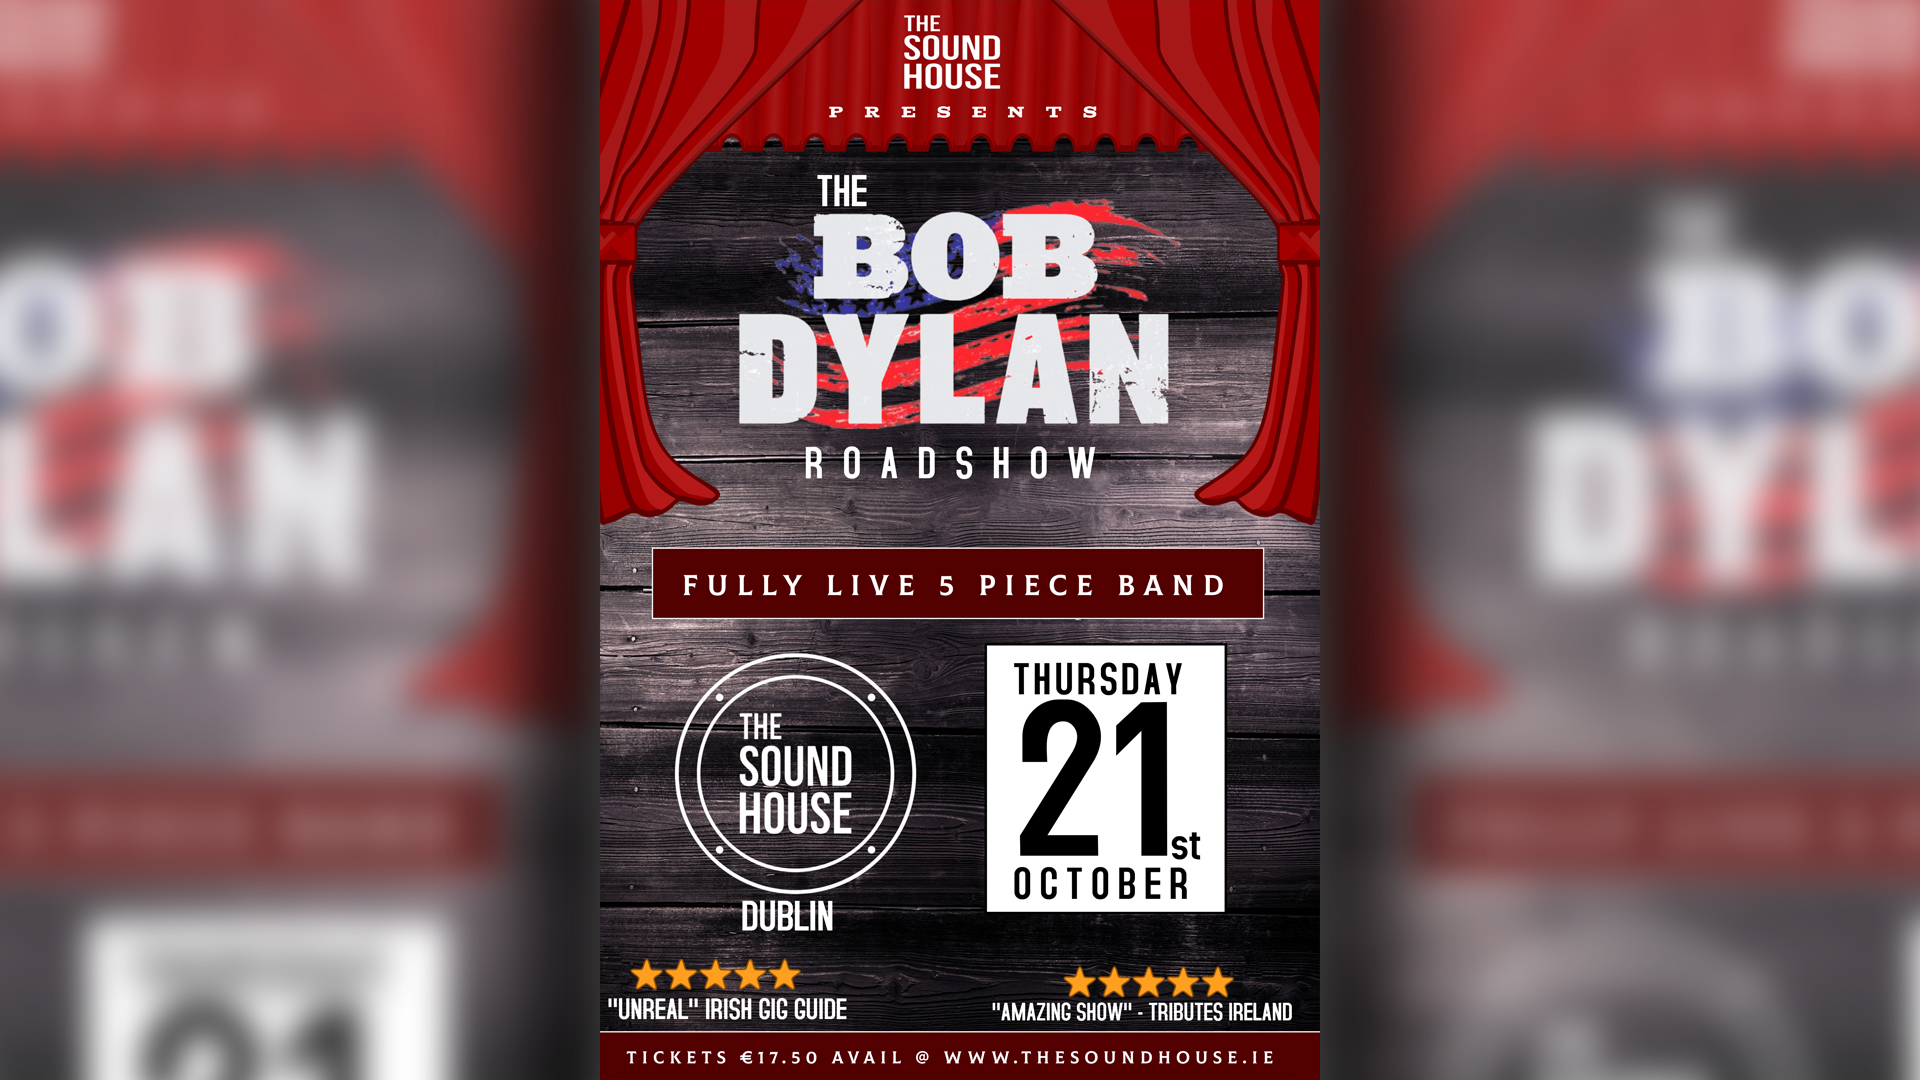 The Bob Dylan Roadshow // Live In The Sound House